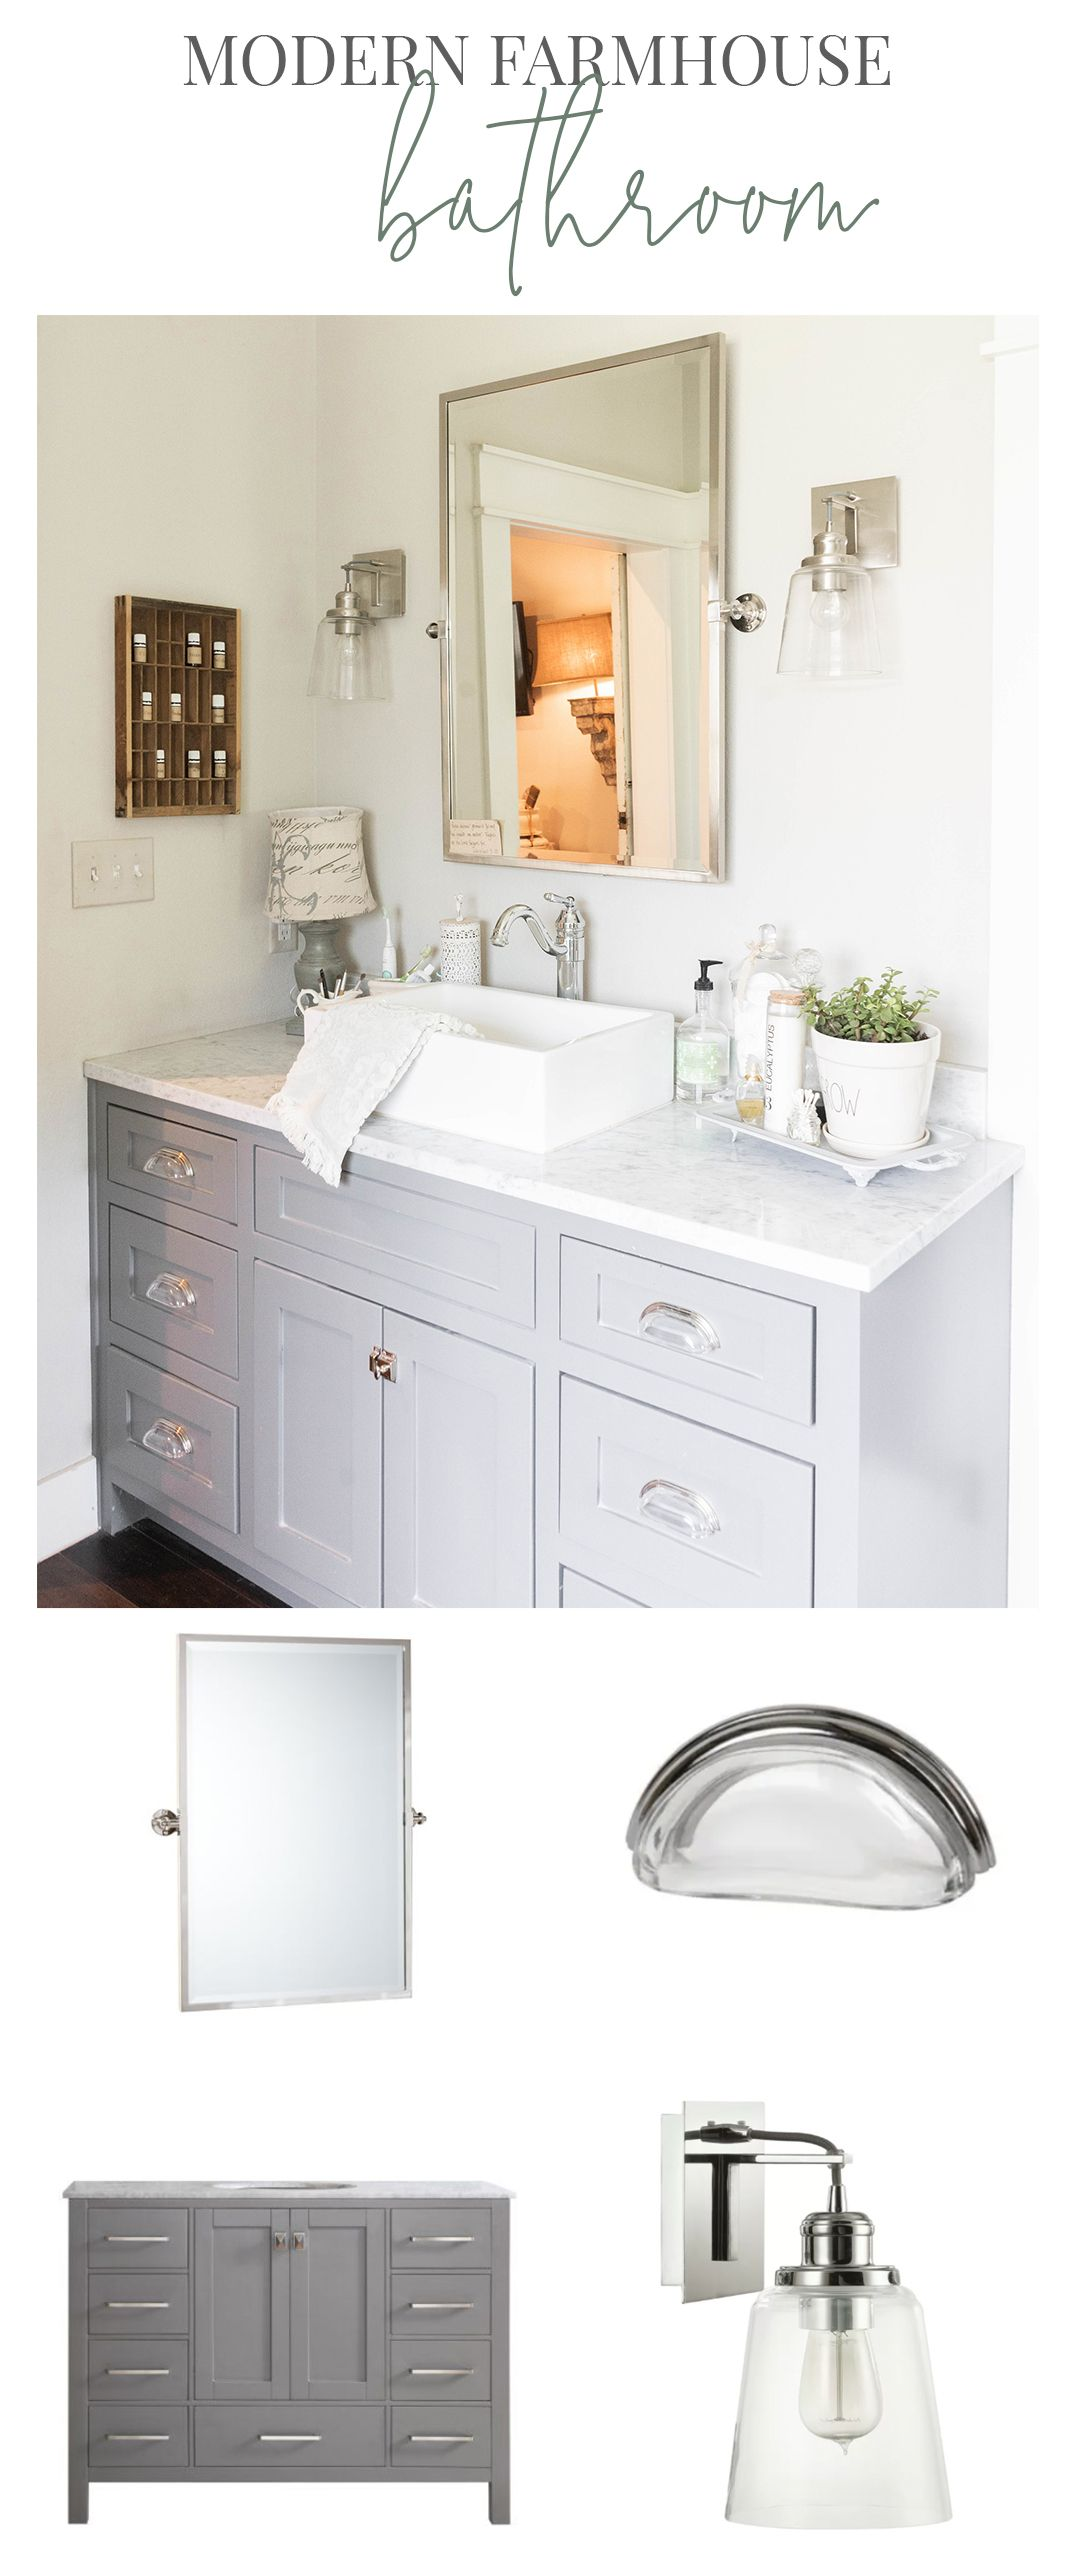 Farmhouse Home Tour With Michele Of Vintage Home Modern Farmhouse Bathroom Small Bathroom Furniture Farmhouse Bathroom